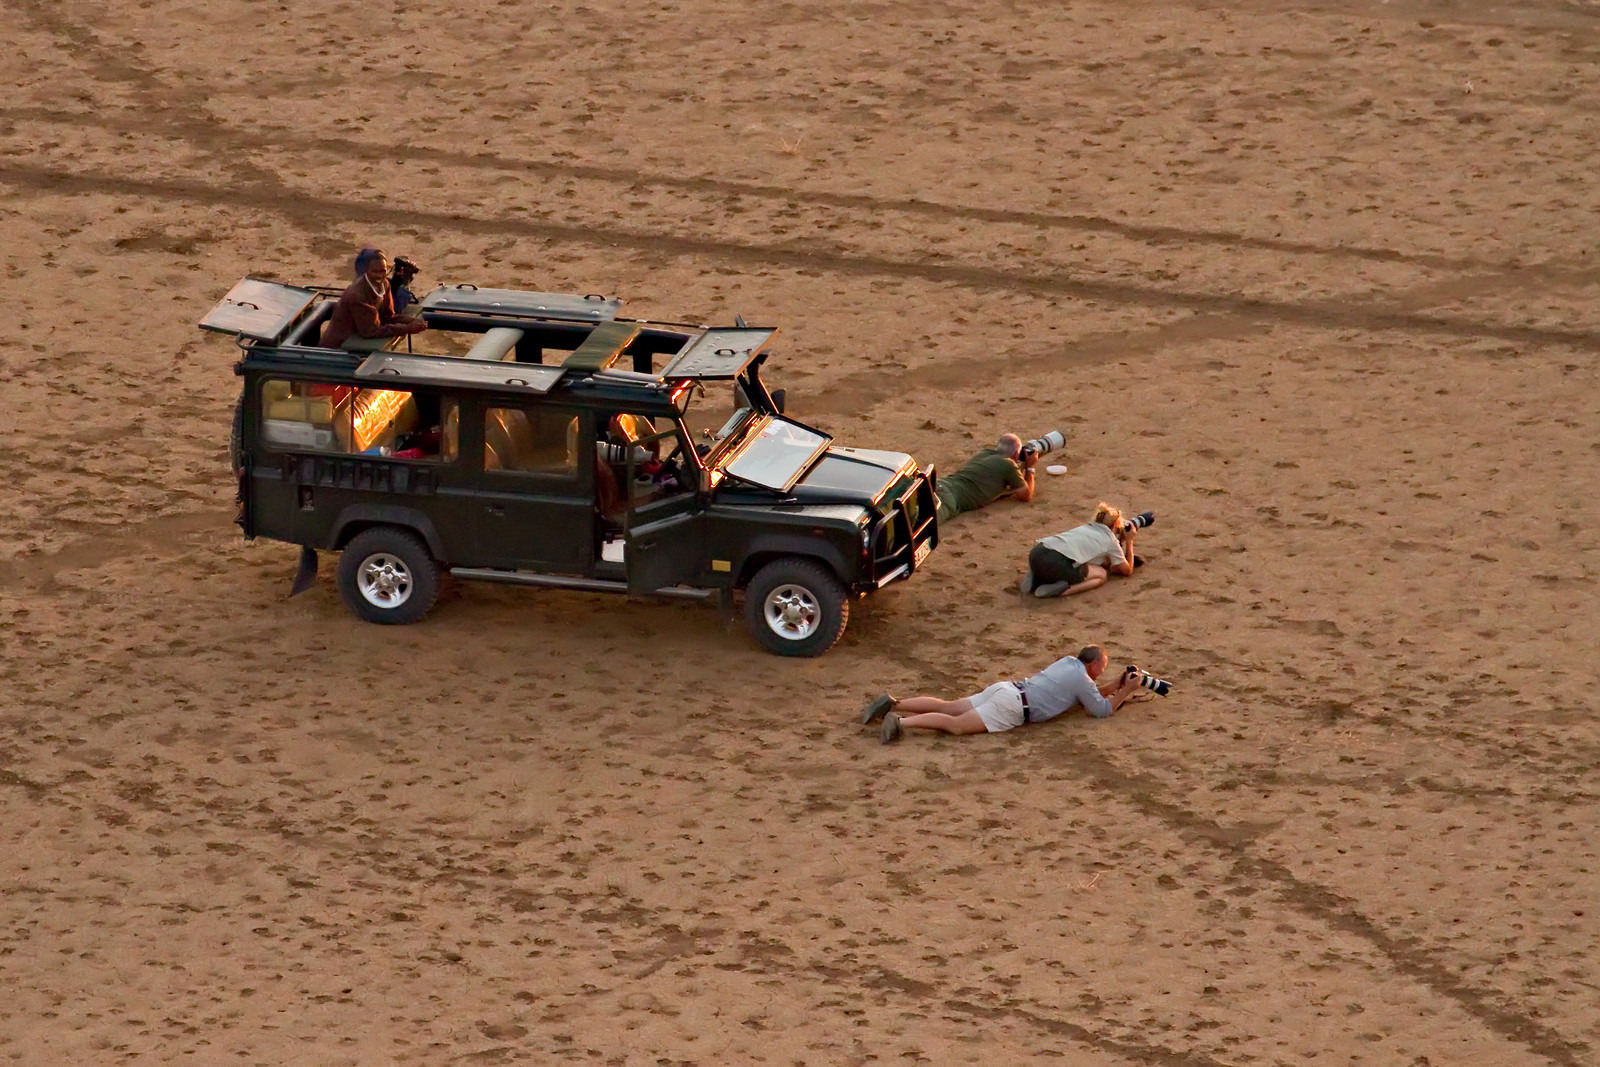 daves crew in the dirt _mg_8606-X3.jpg